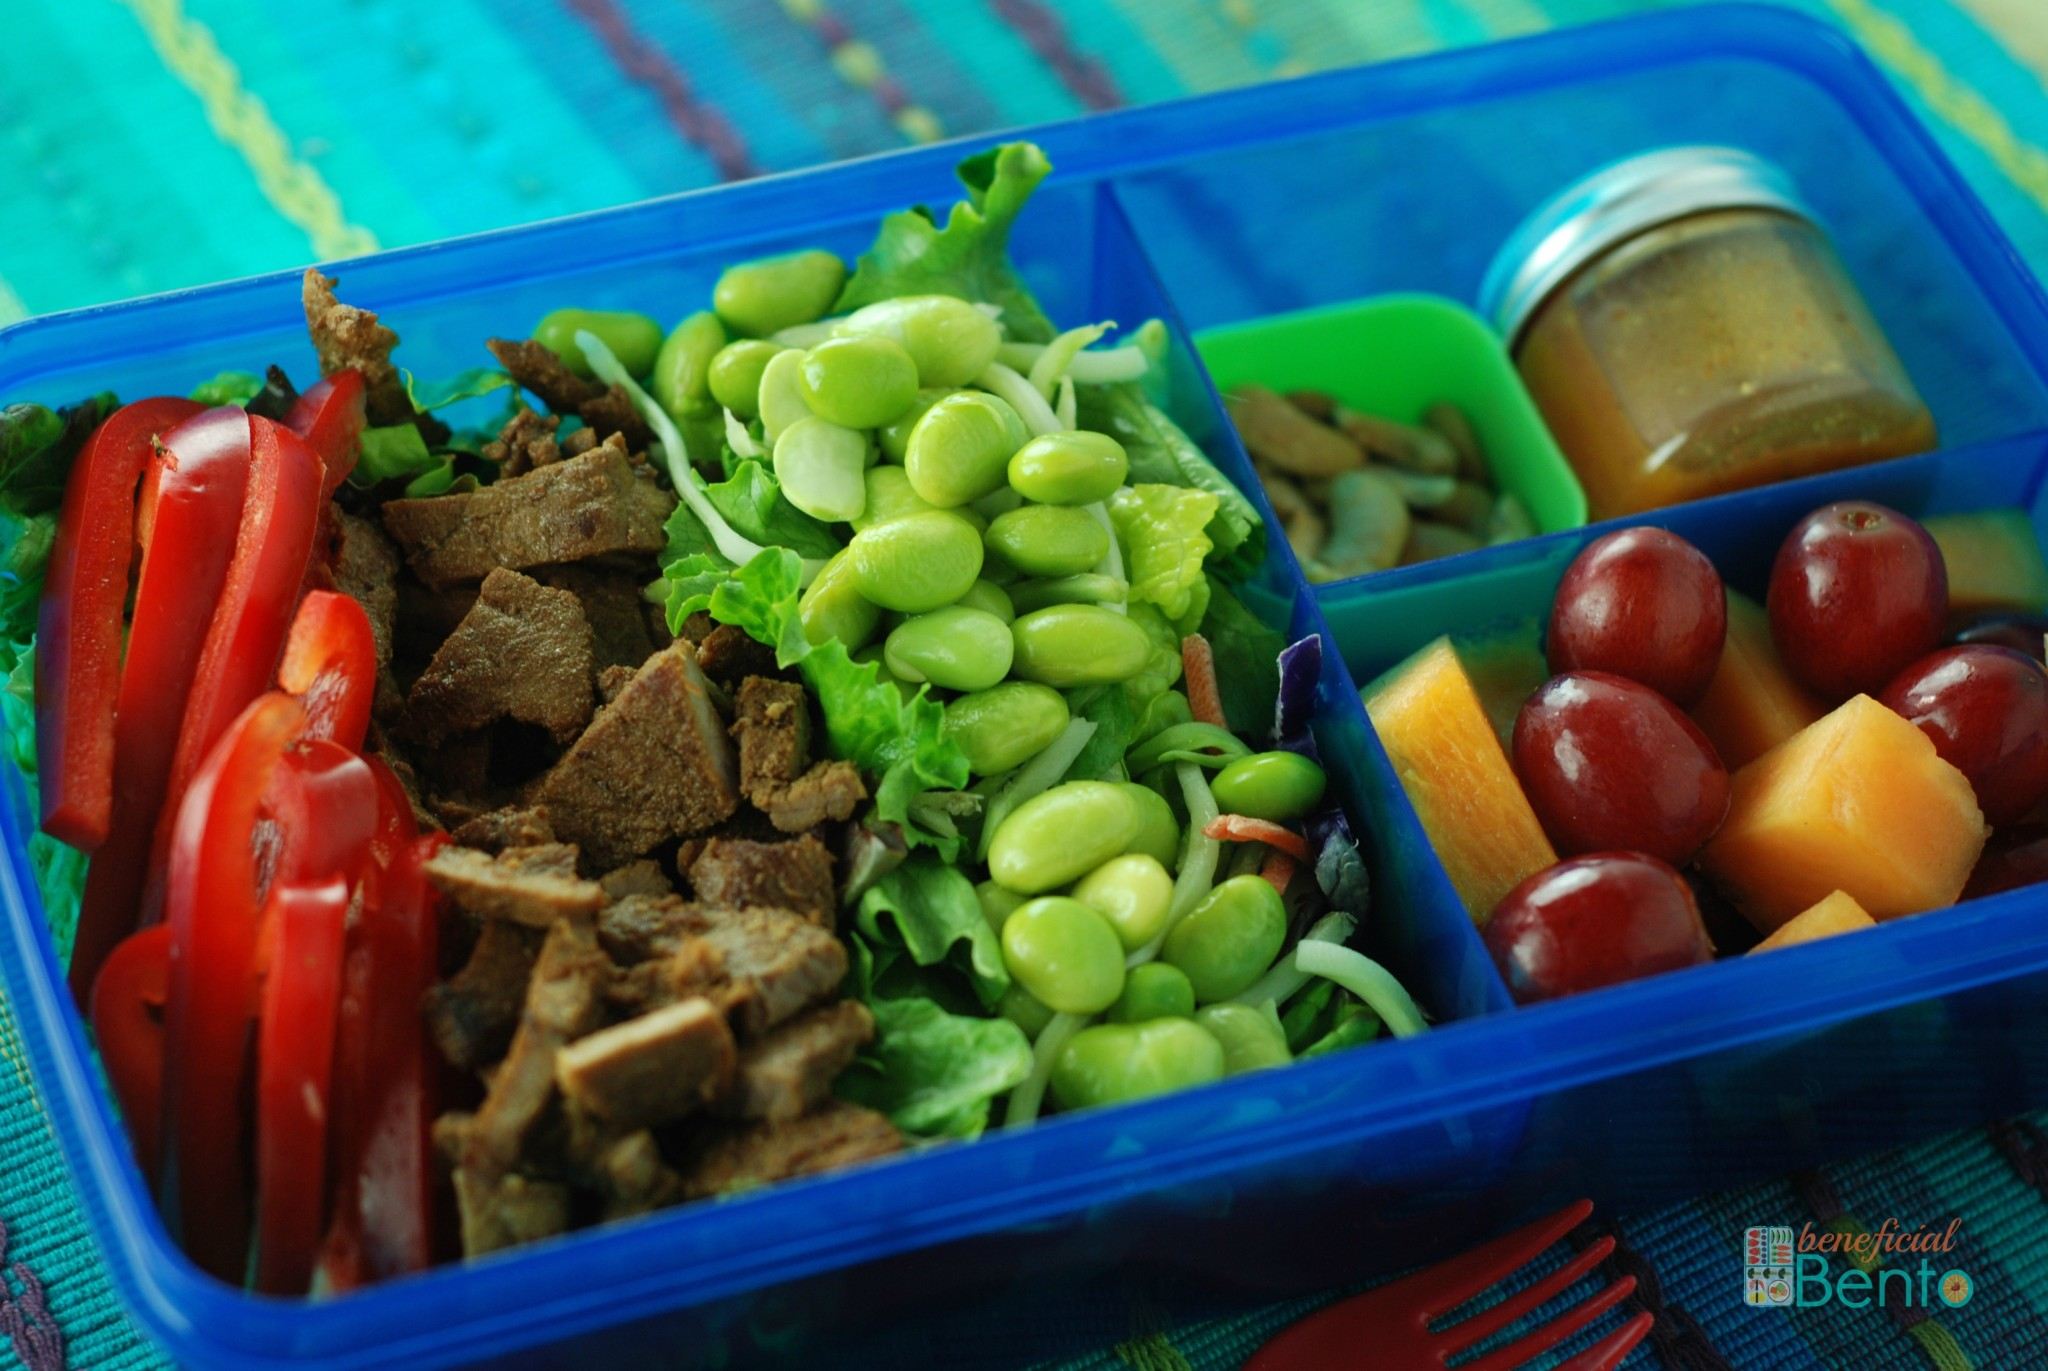 Beef and Edamame Salad - awesome combo of flavors, and colors!